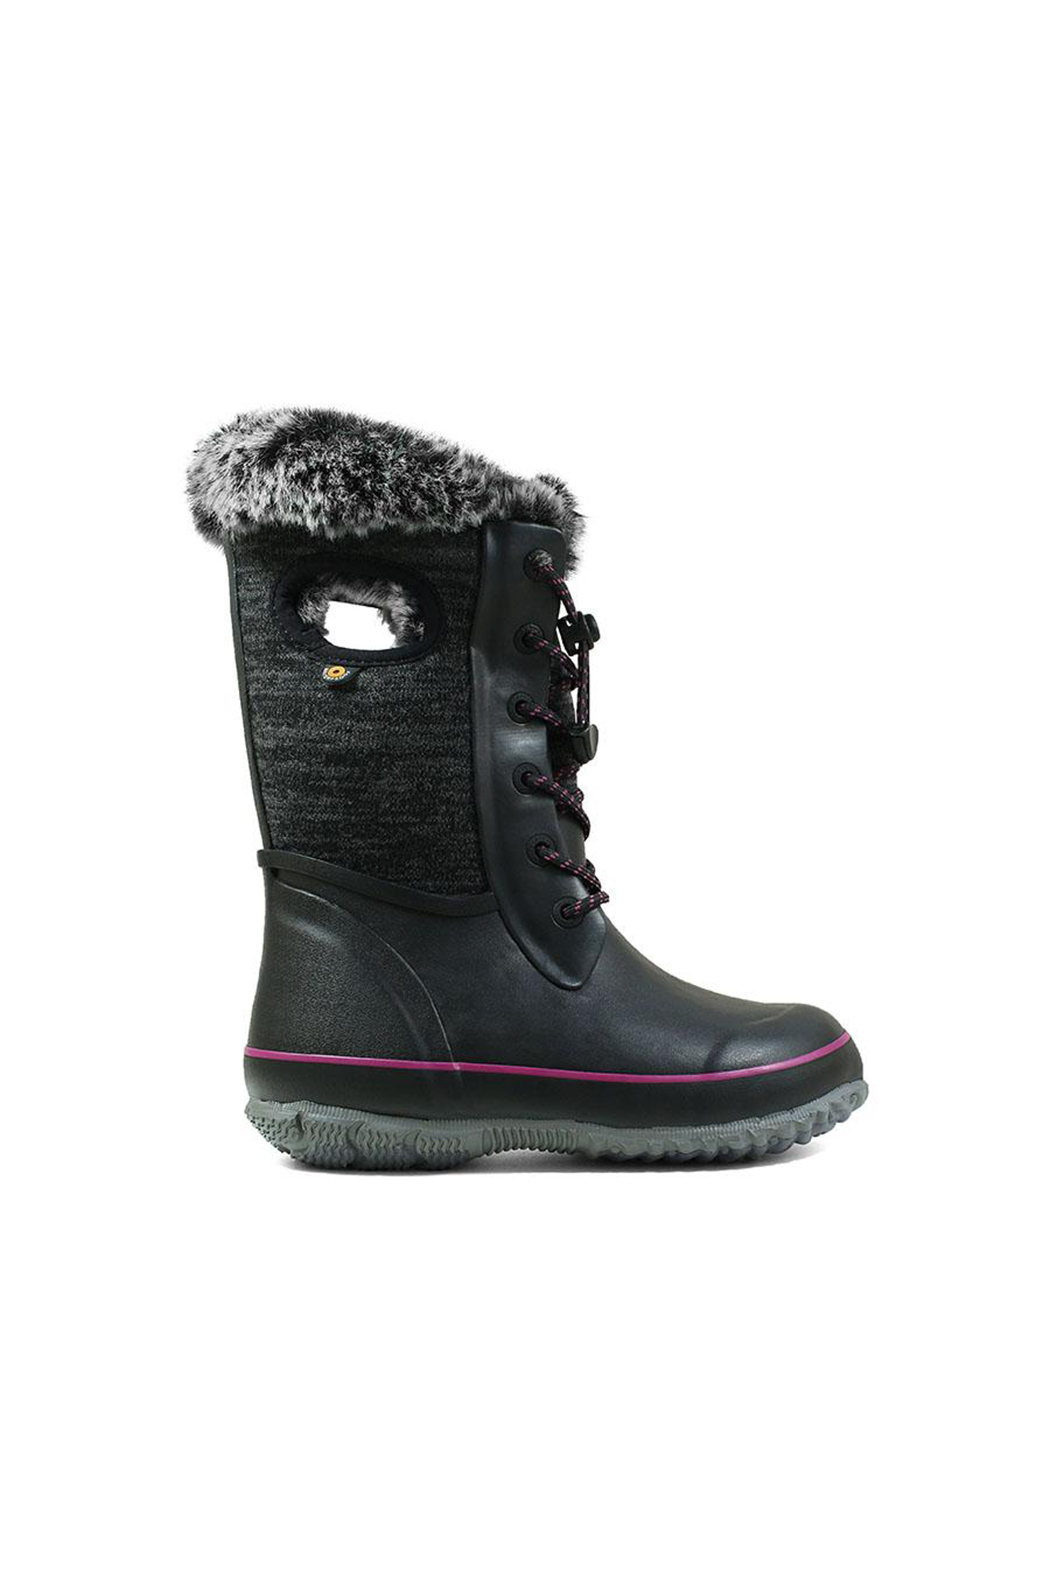 BOGS Arcata Knit Kids Waterproof Boots - Main Image